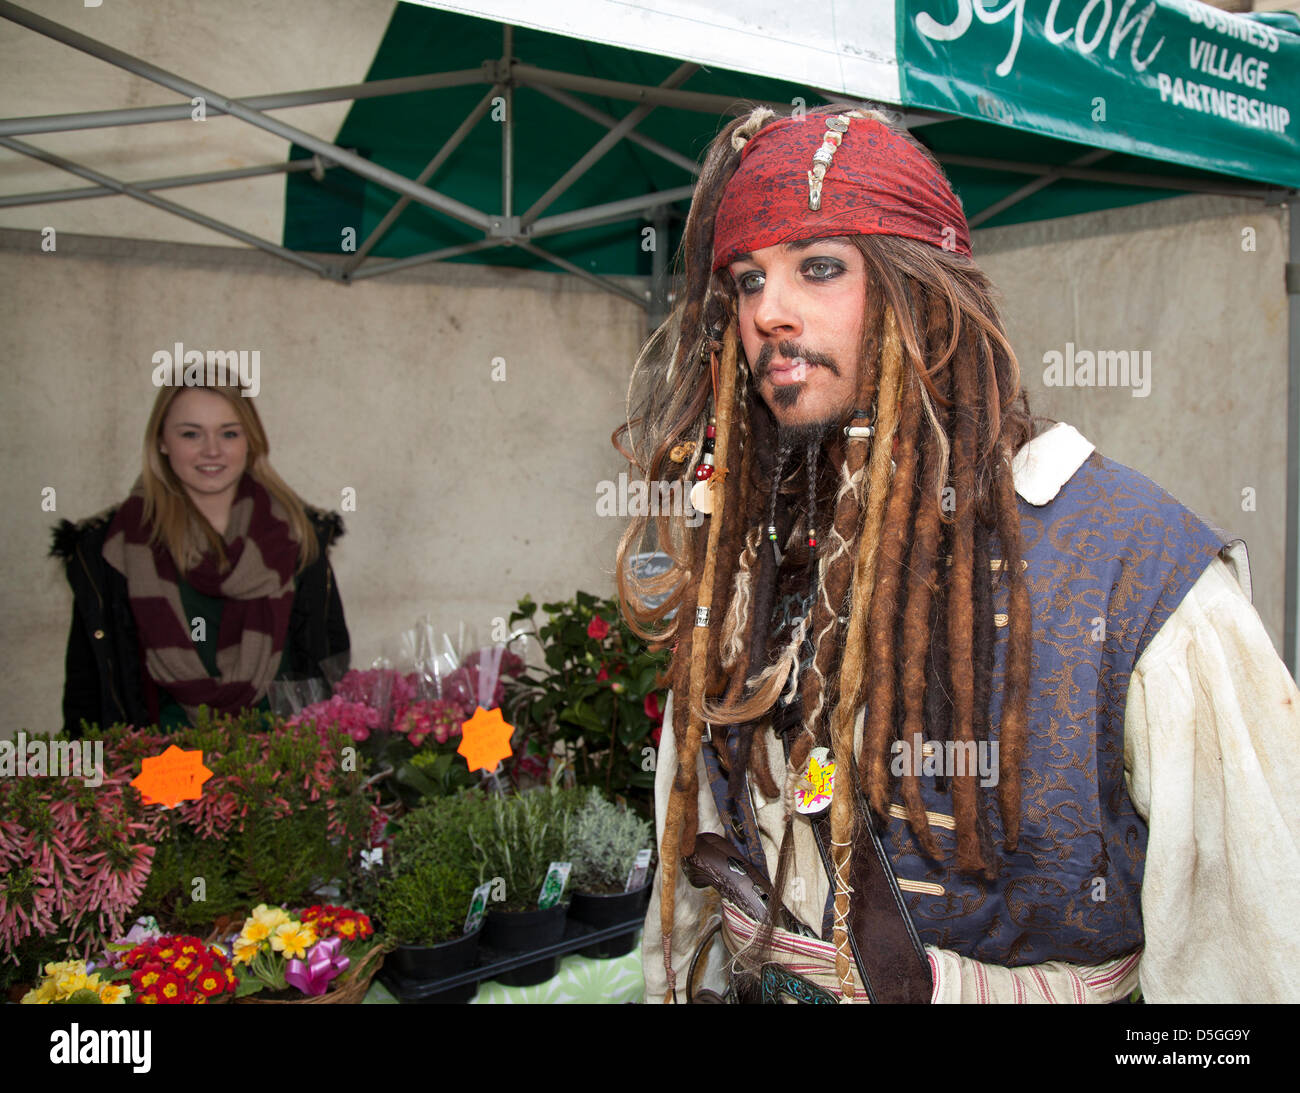 Southport, Merseyside, UK. 2nd April, 2013.  John Brook, 32 from Southport at the new outdoor market, an alfresco - Stock Image